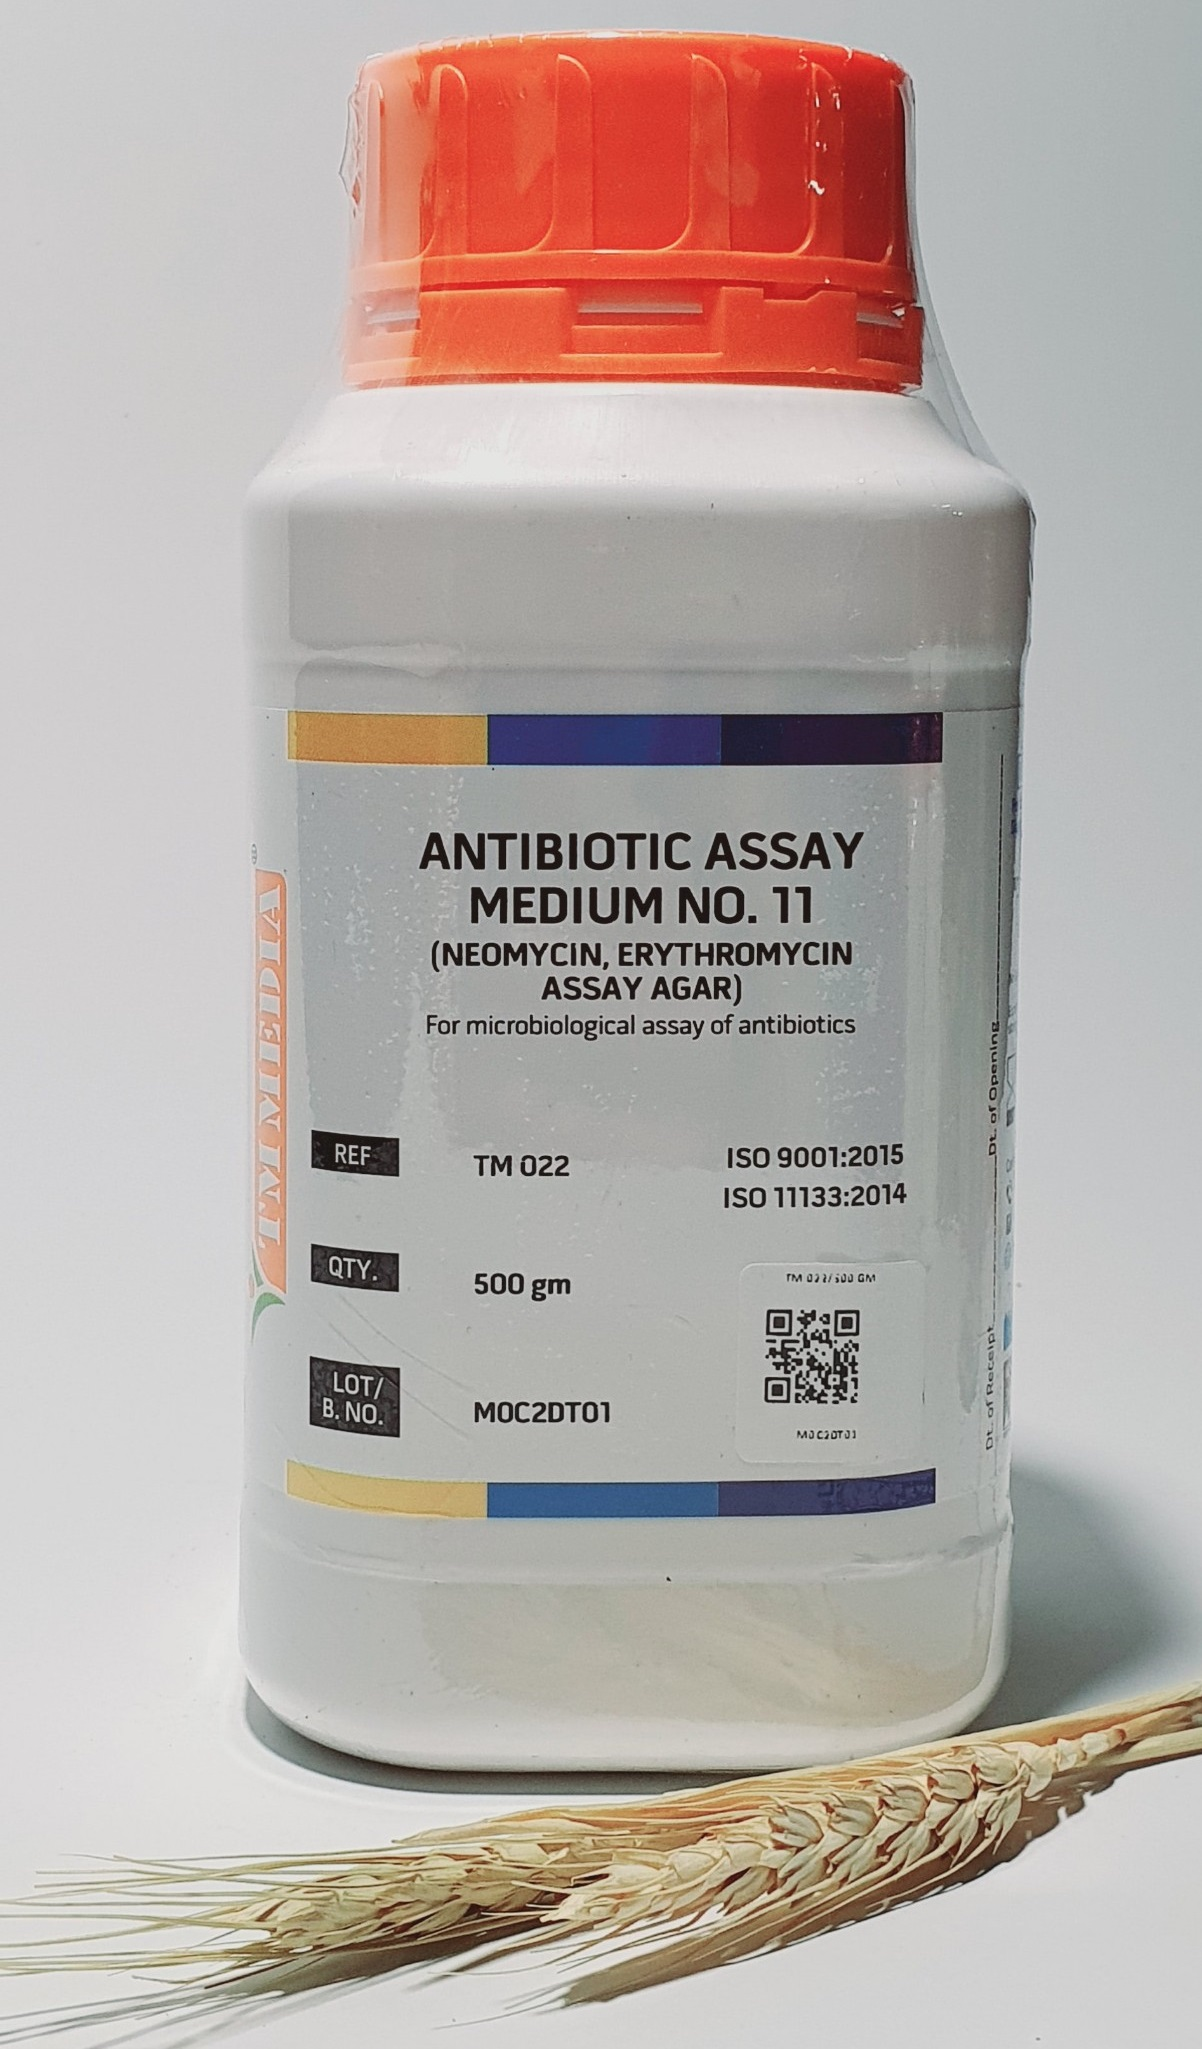 Antibiotic Assay Medium No.11 Neomycin, Erythromycin Assay Agar Erythromycin Seed Agar